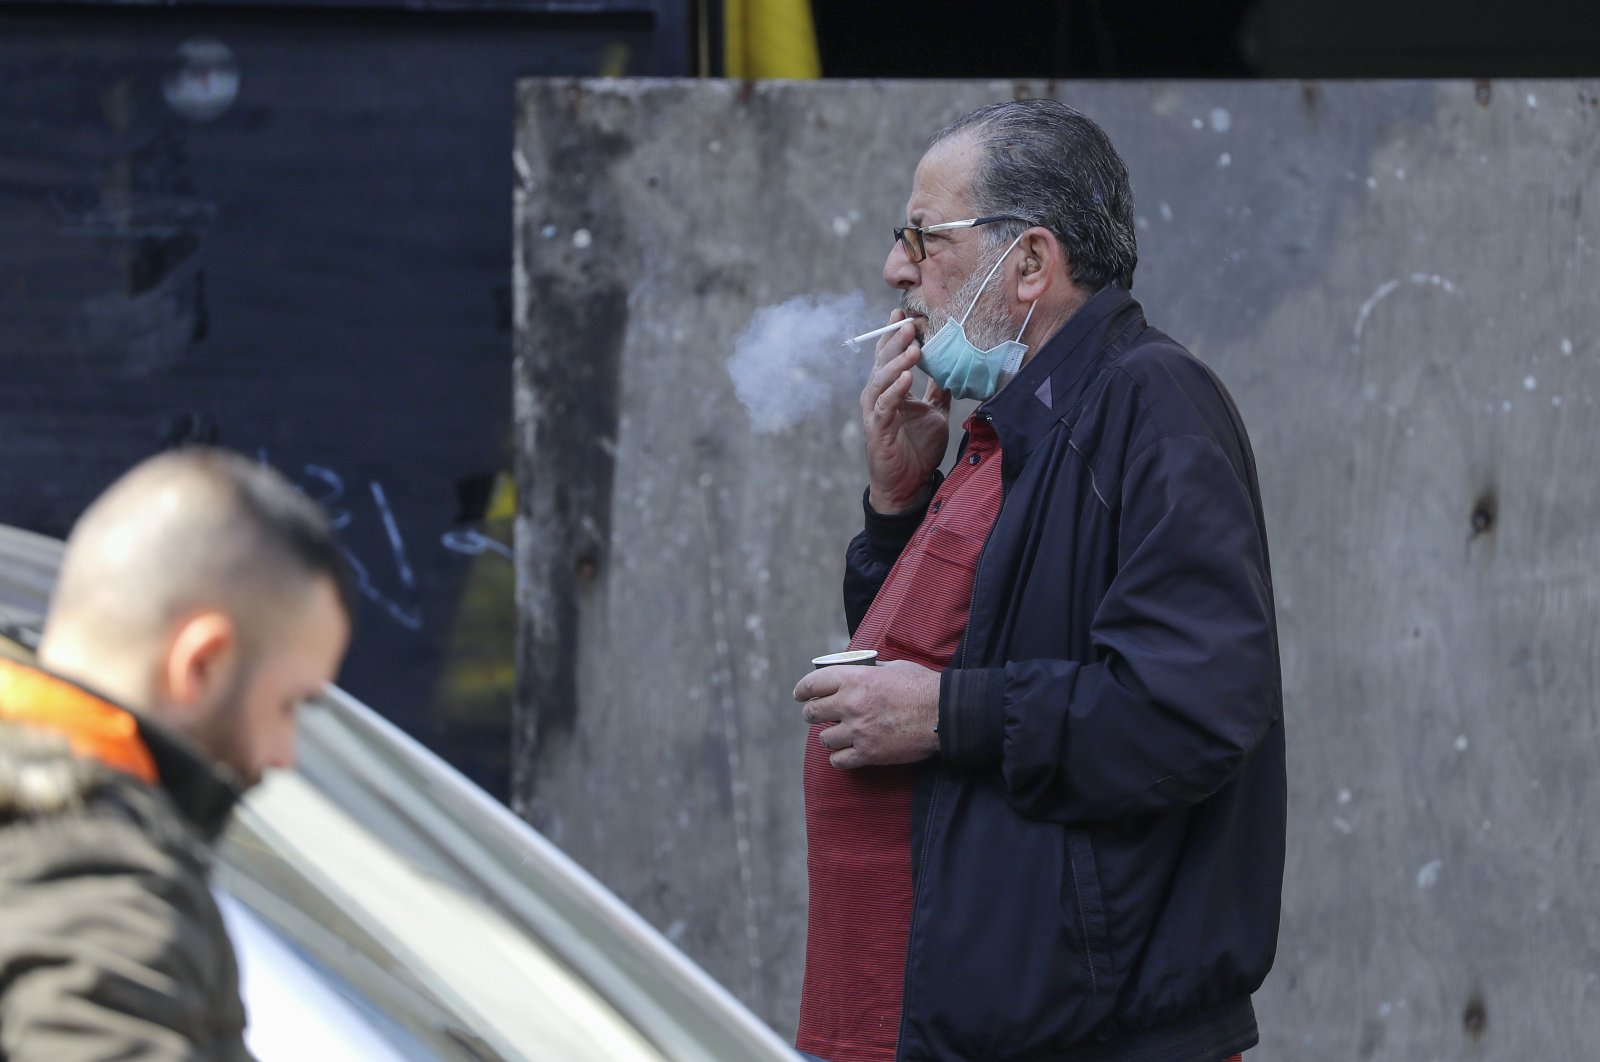 A Lebanese man has his surgical mask lowered to smoke a cigarette on a street of the capital Beirut, on March 2, 2020, amid a novel coronavirus outbreak.(AFP Photo)